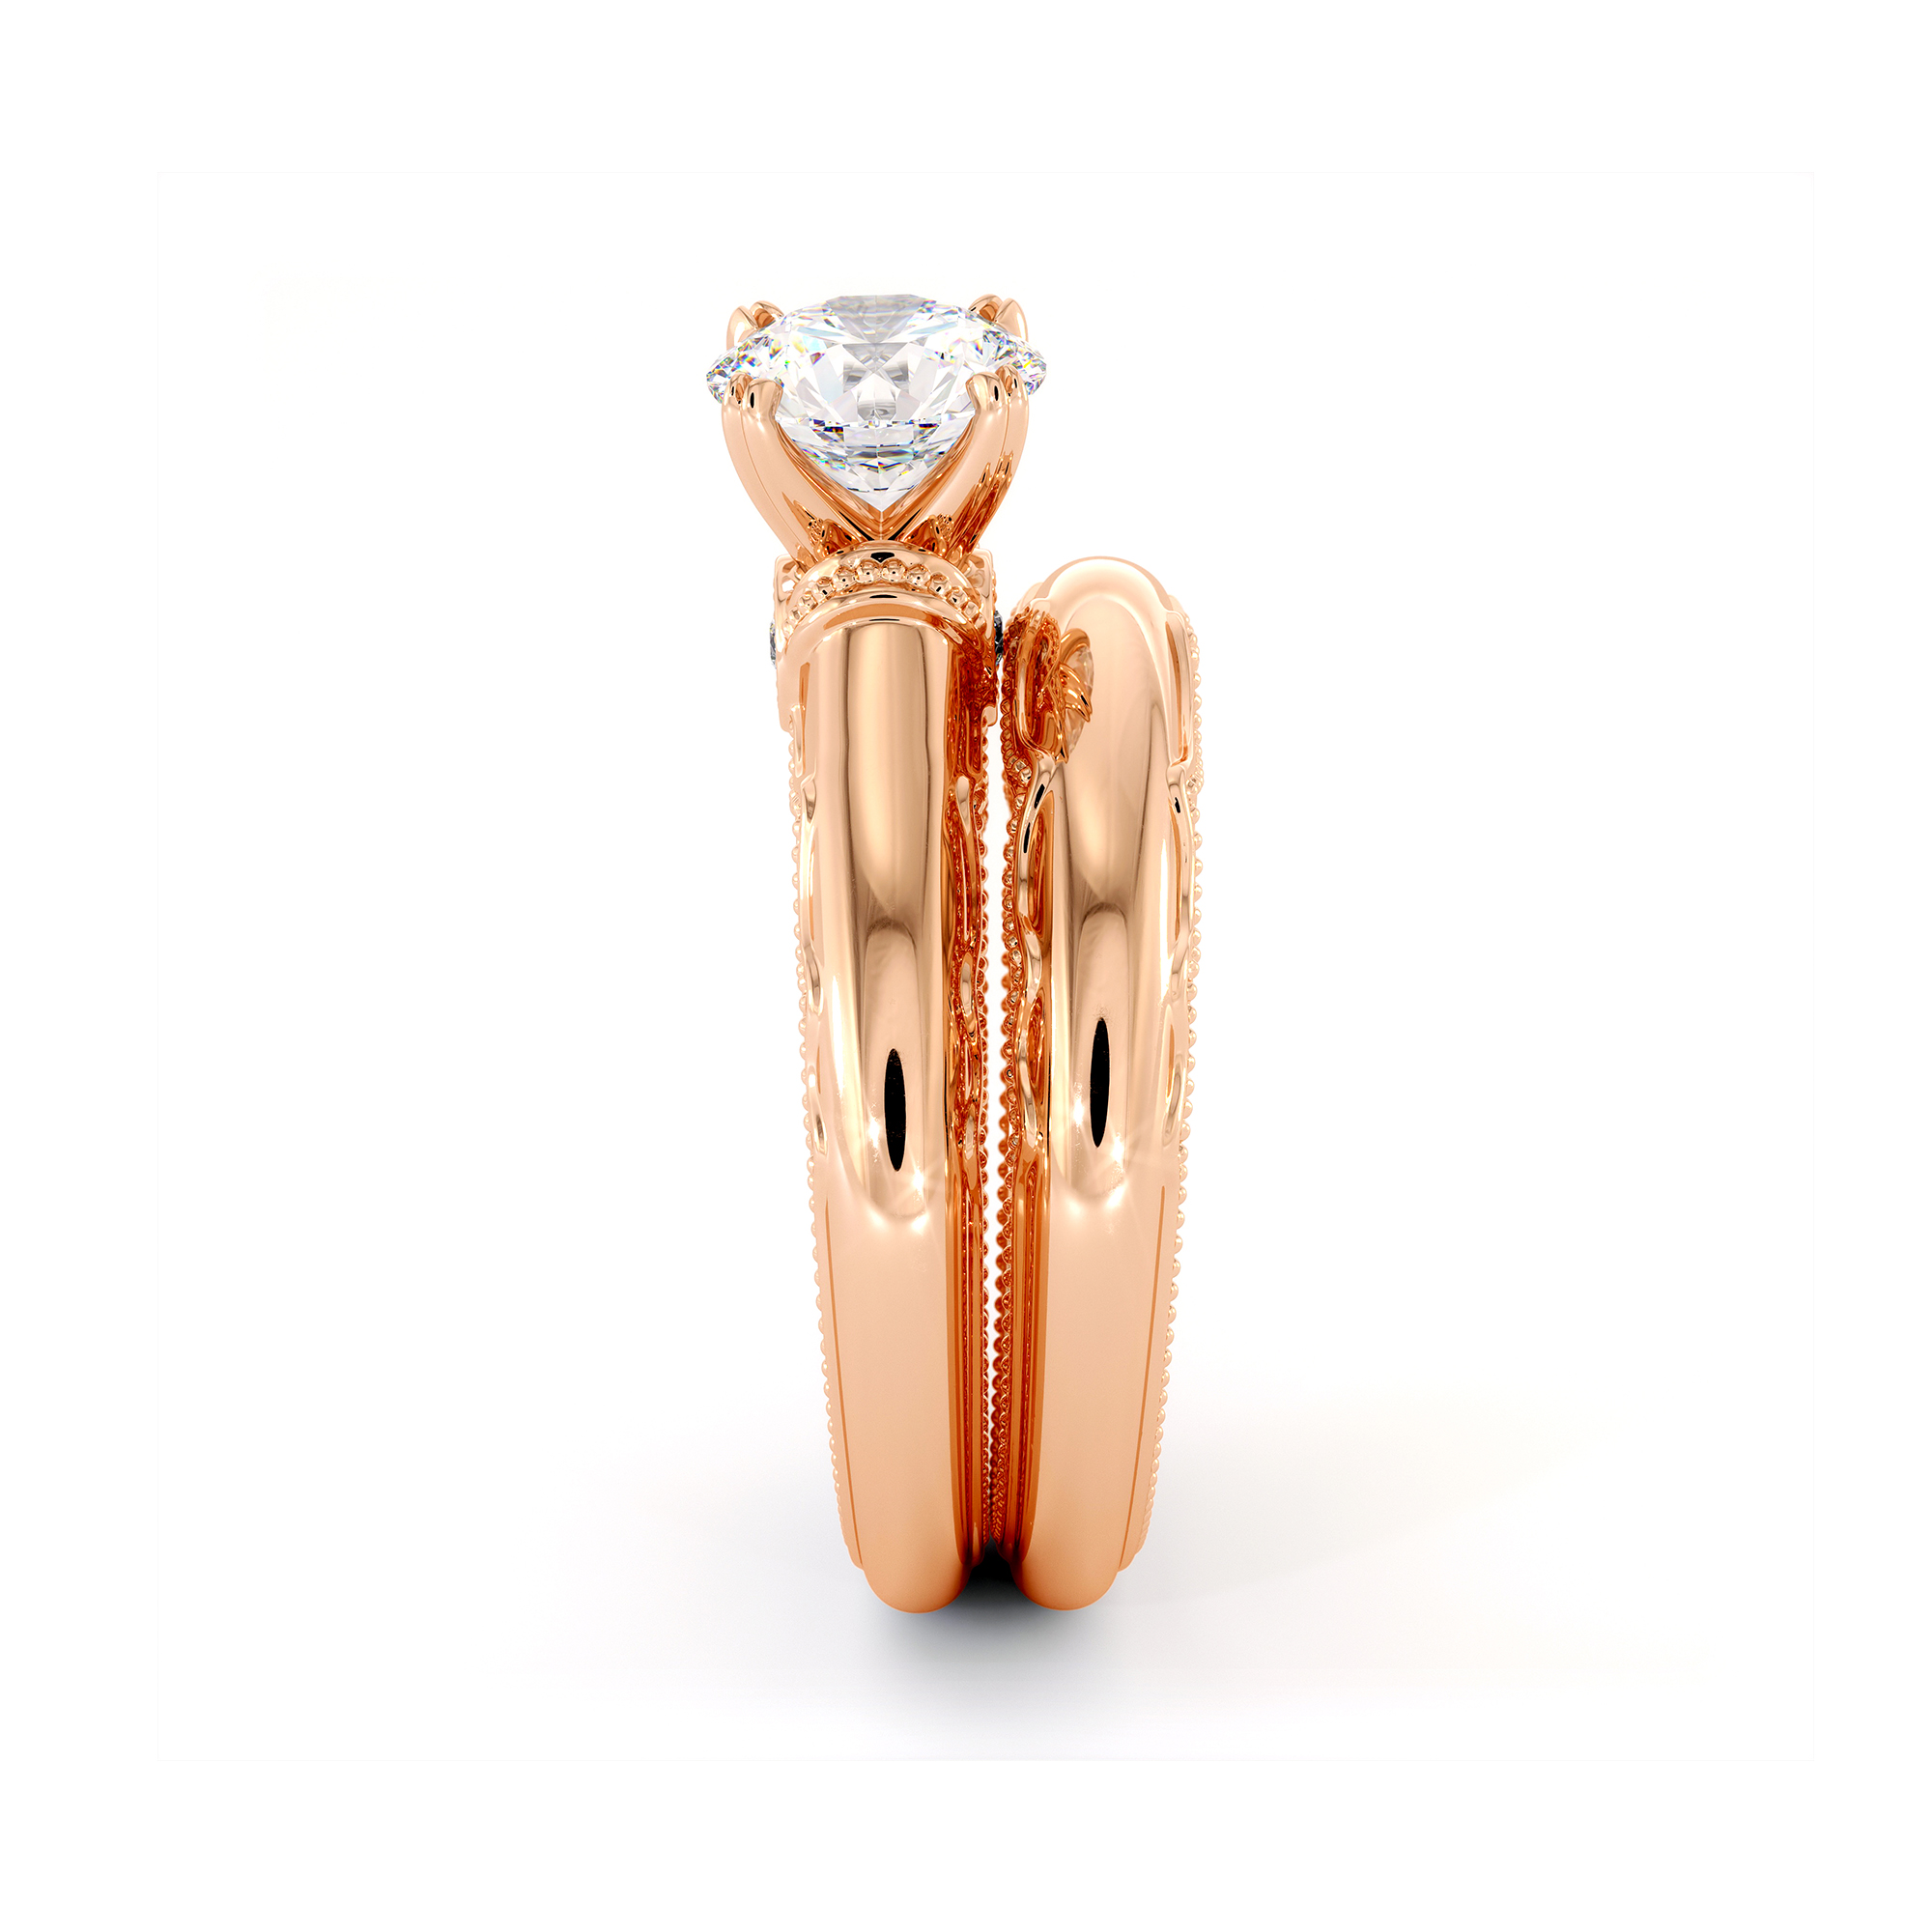 Queenly Bridal Set Moissanite Engagement Ring Set 14K Rose Gold Rings Unique Anniversary Gift